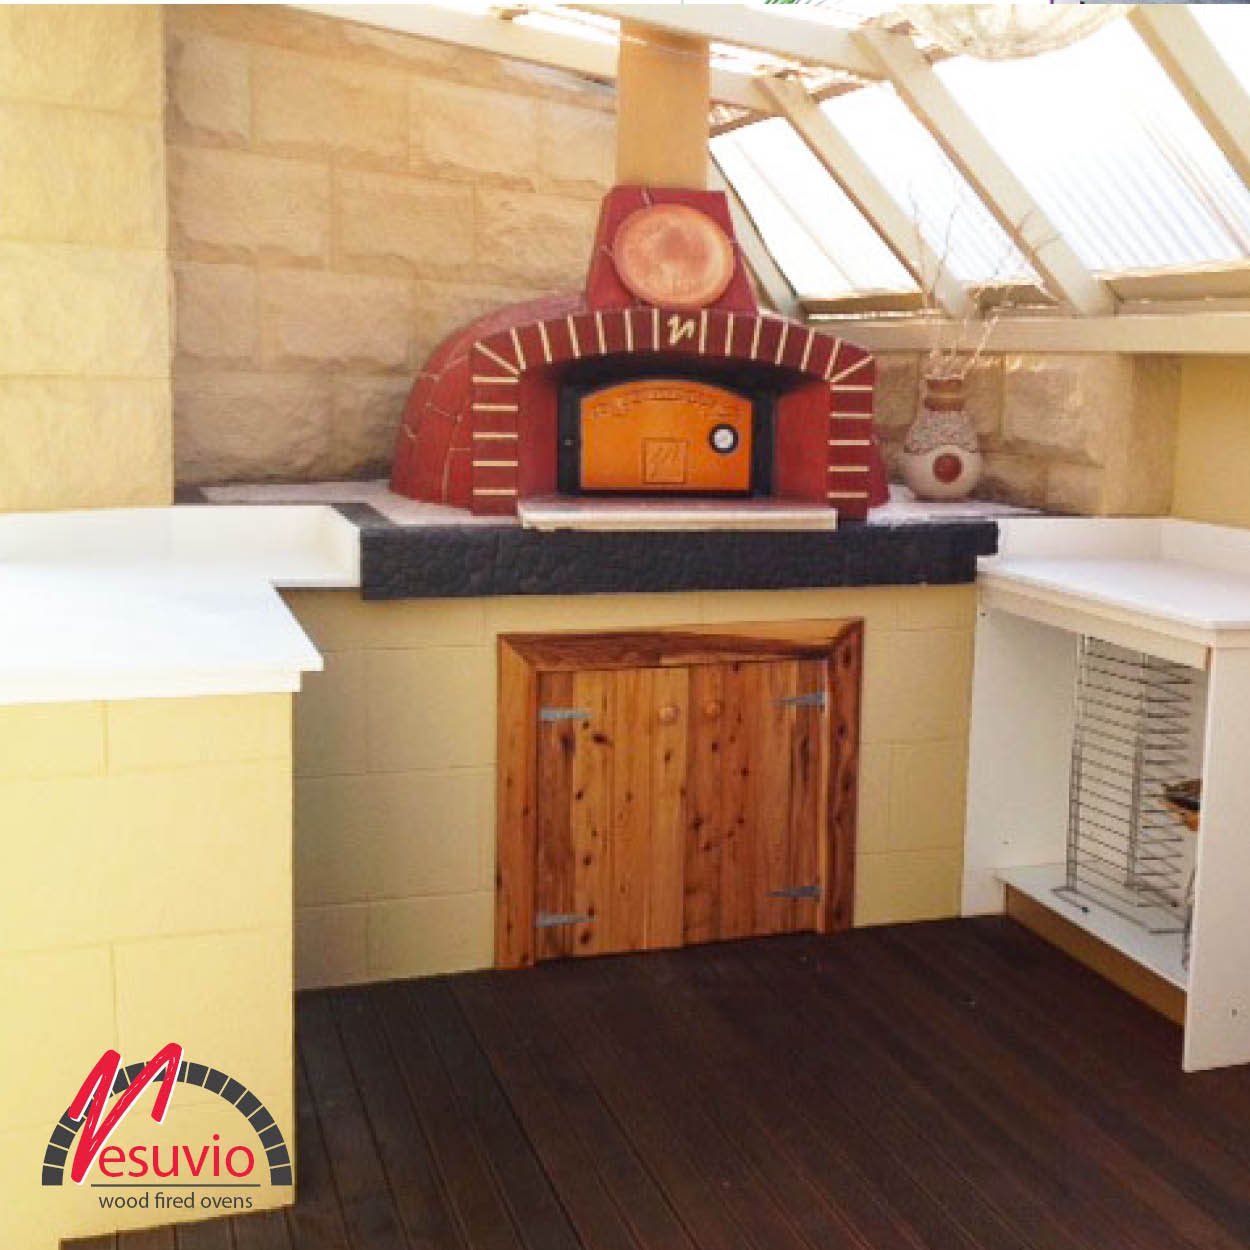 Residential Wood Fired Ovens Gallery - Vesuvio Wood Fired ...